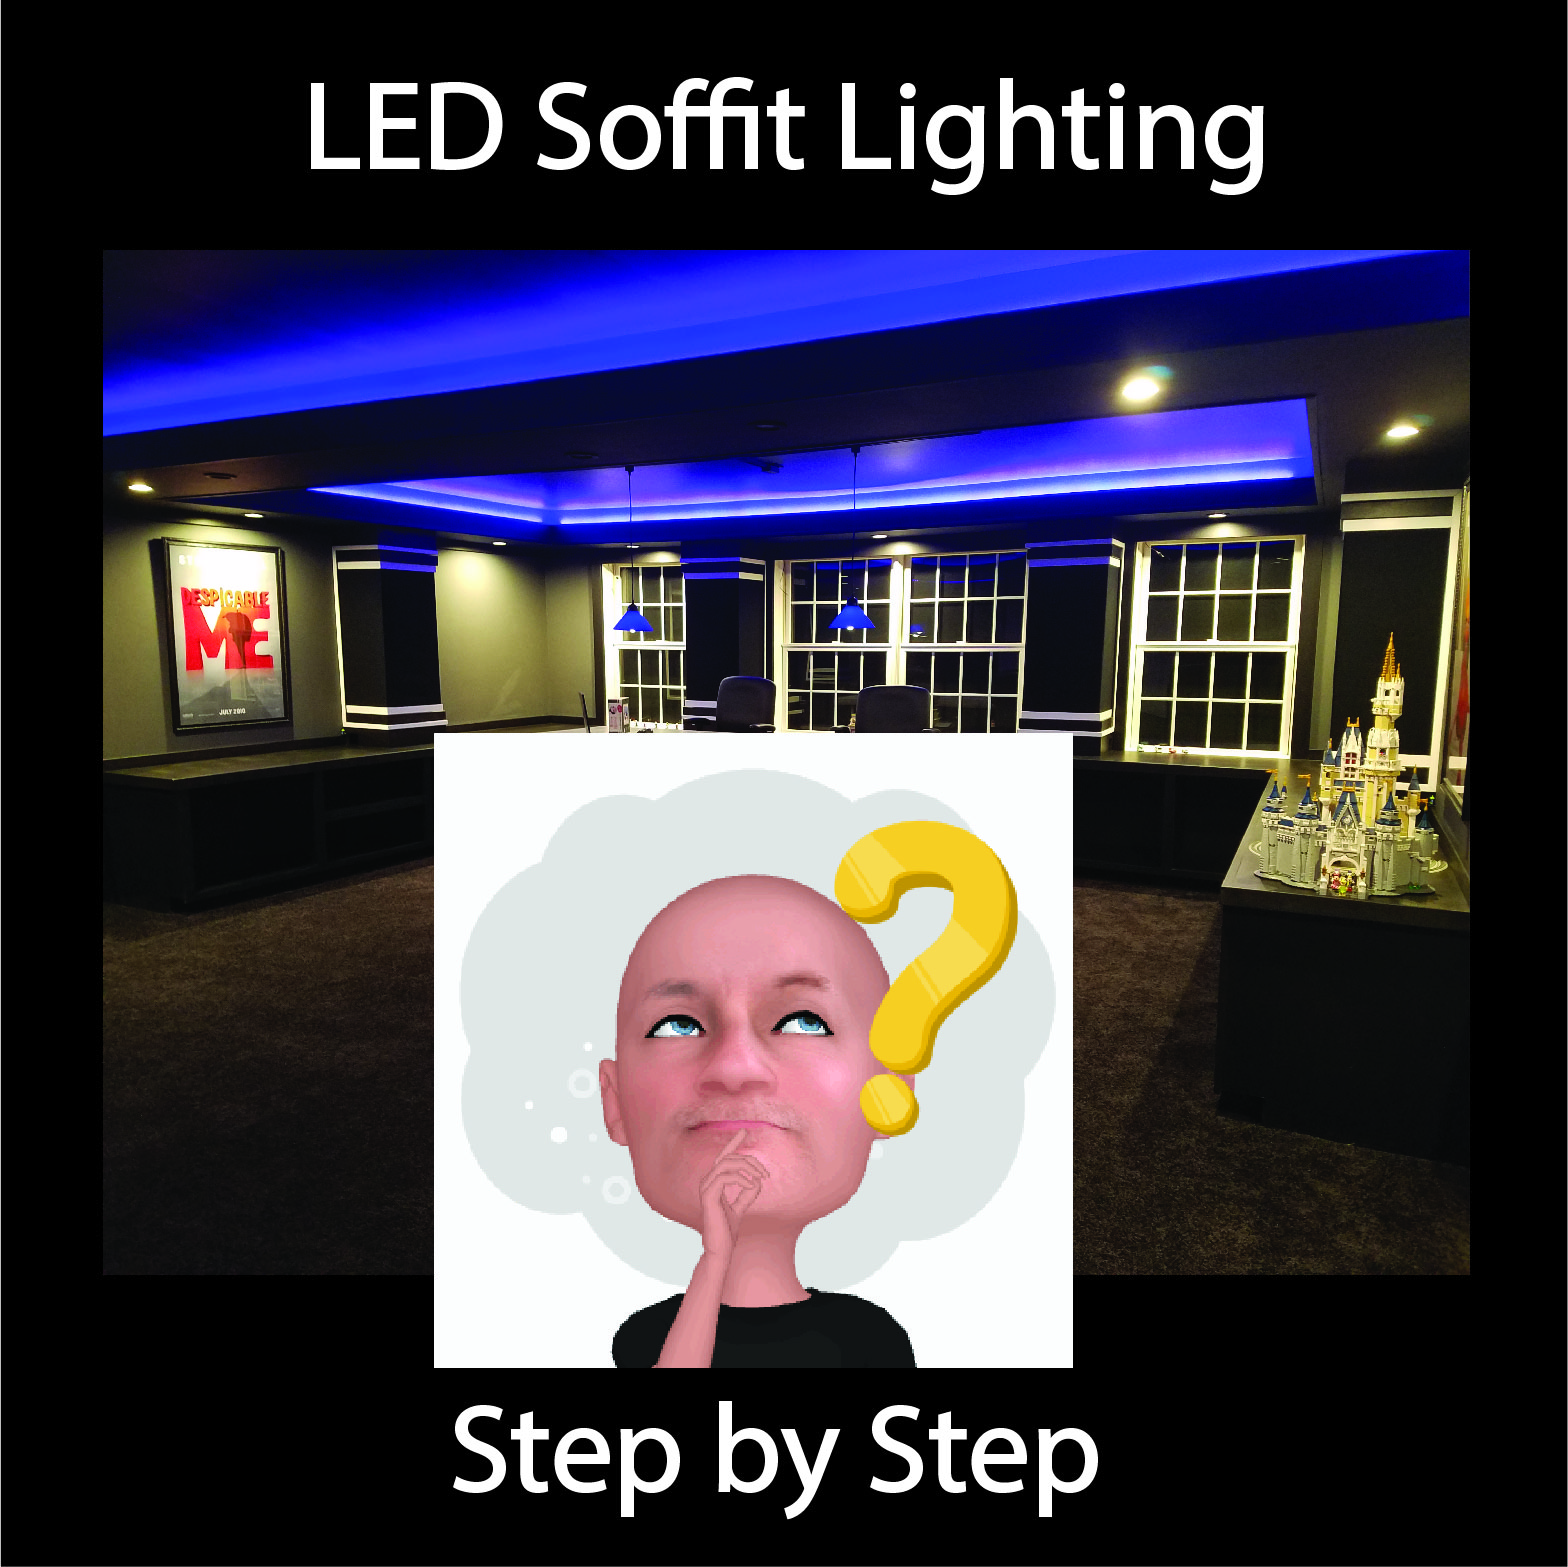 Led Soffit Lighting Learn How To Build Your Own Smart